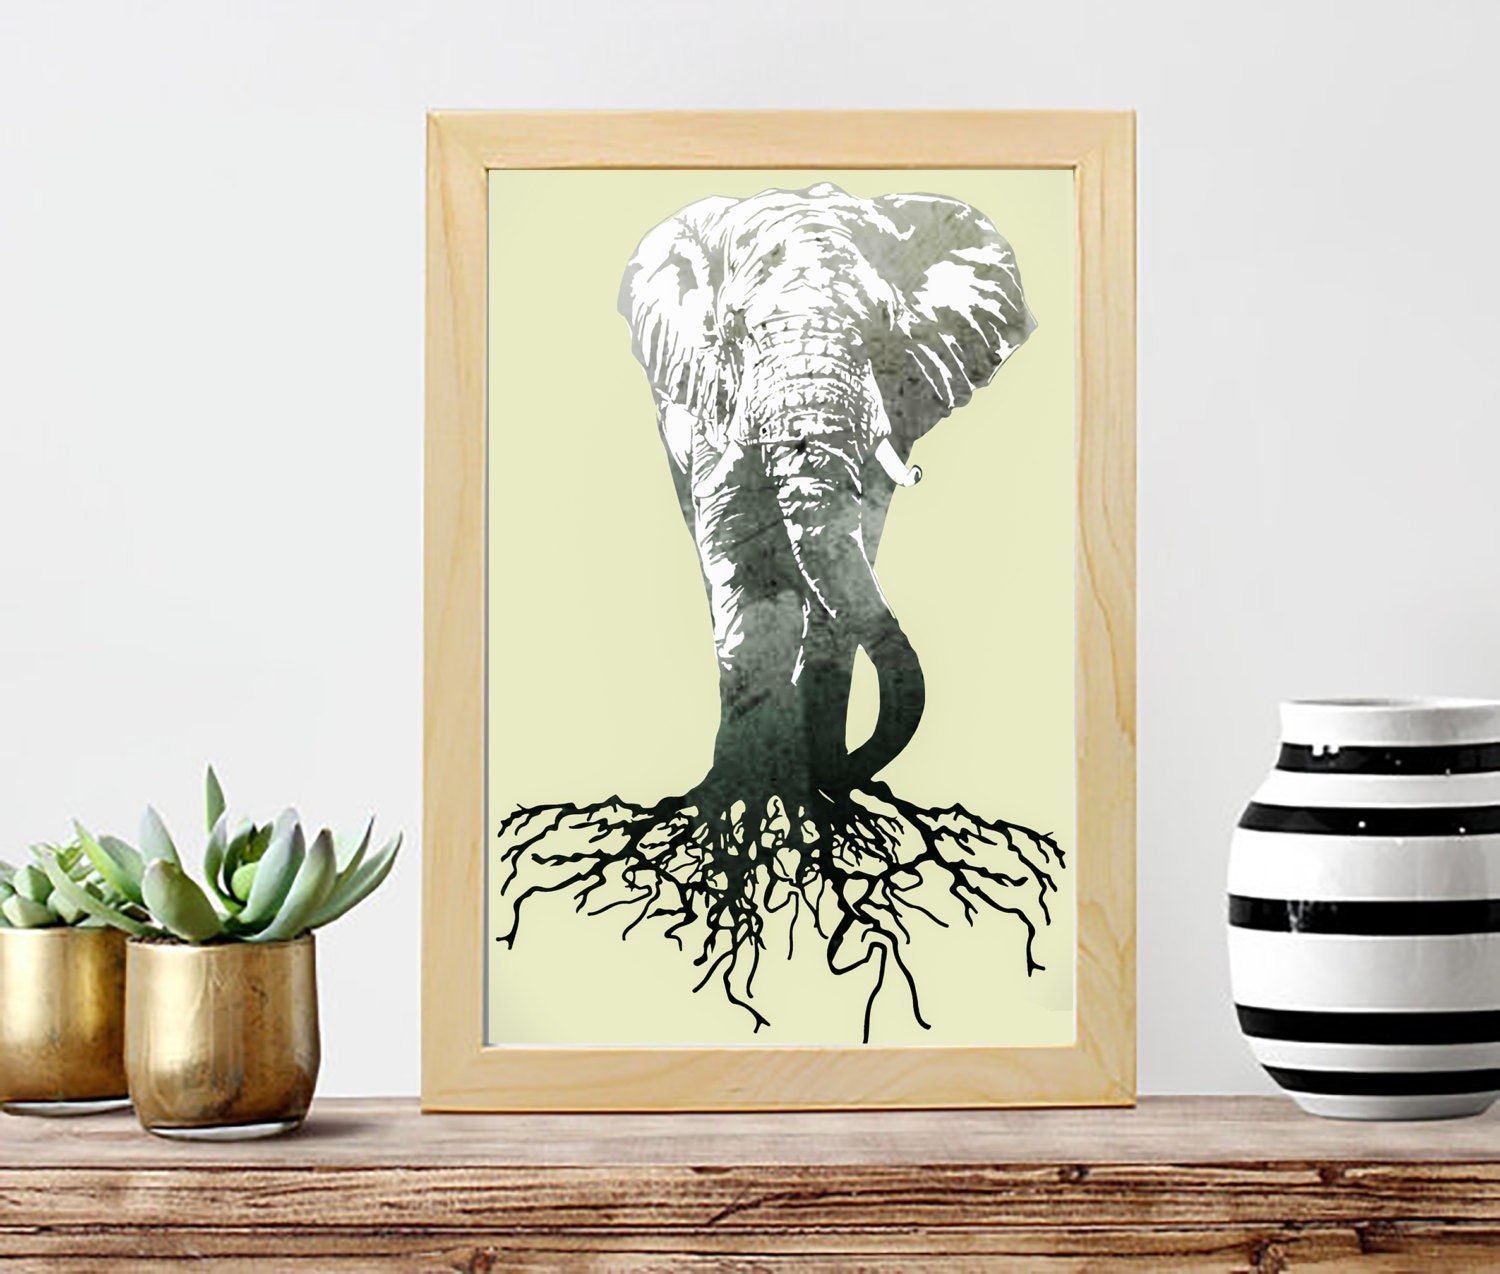 Elephant Poster Print Wall Art Home Decor Boho Decor